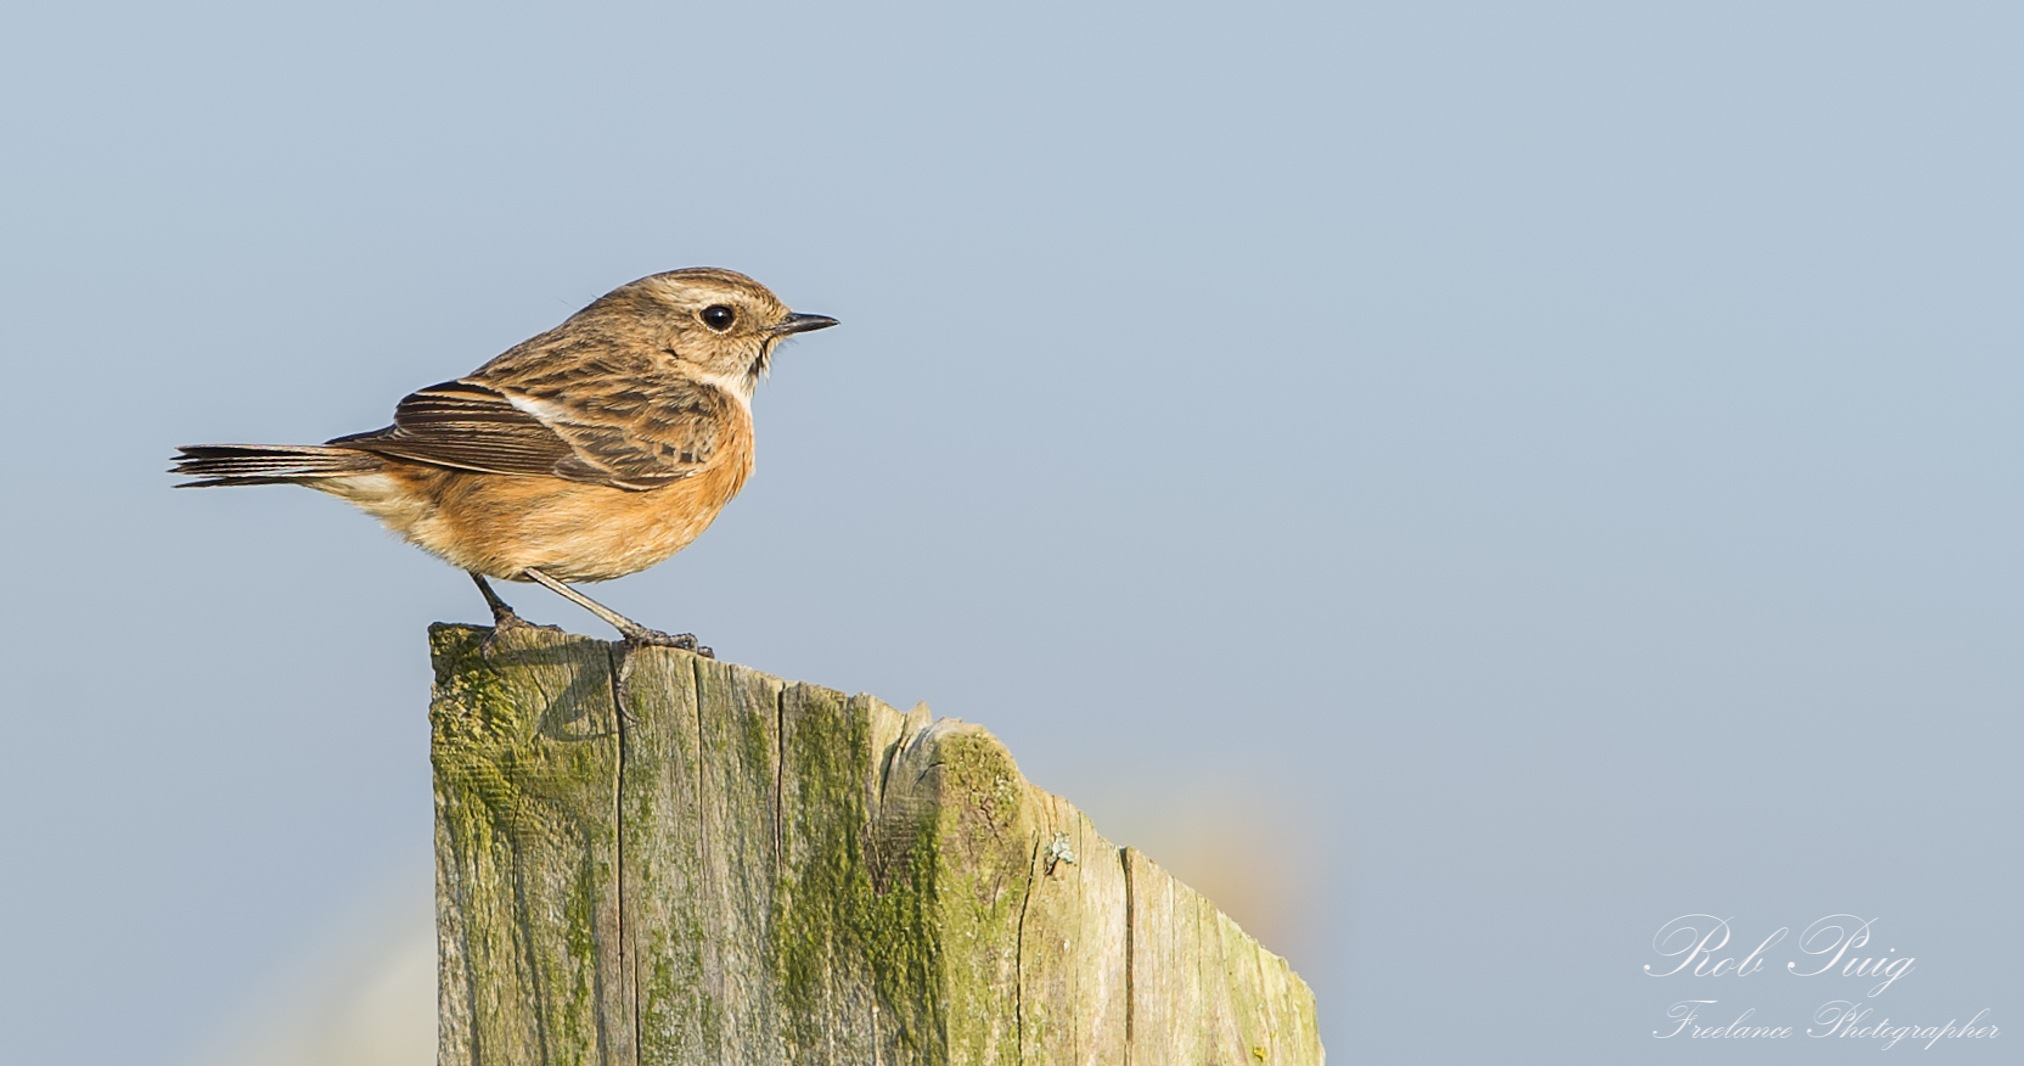 Stonechat by Robert Puig